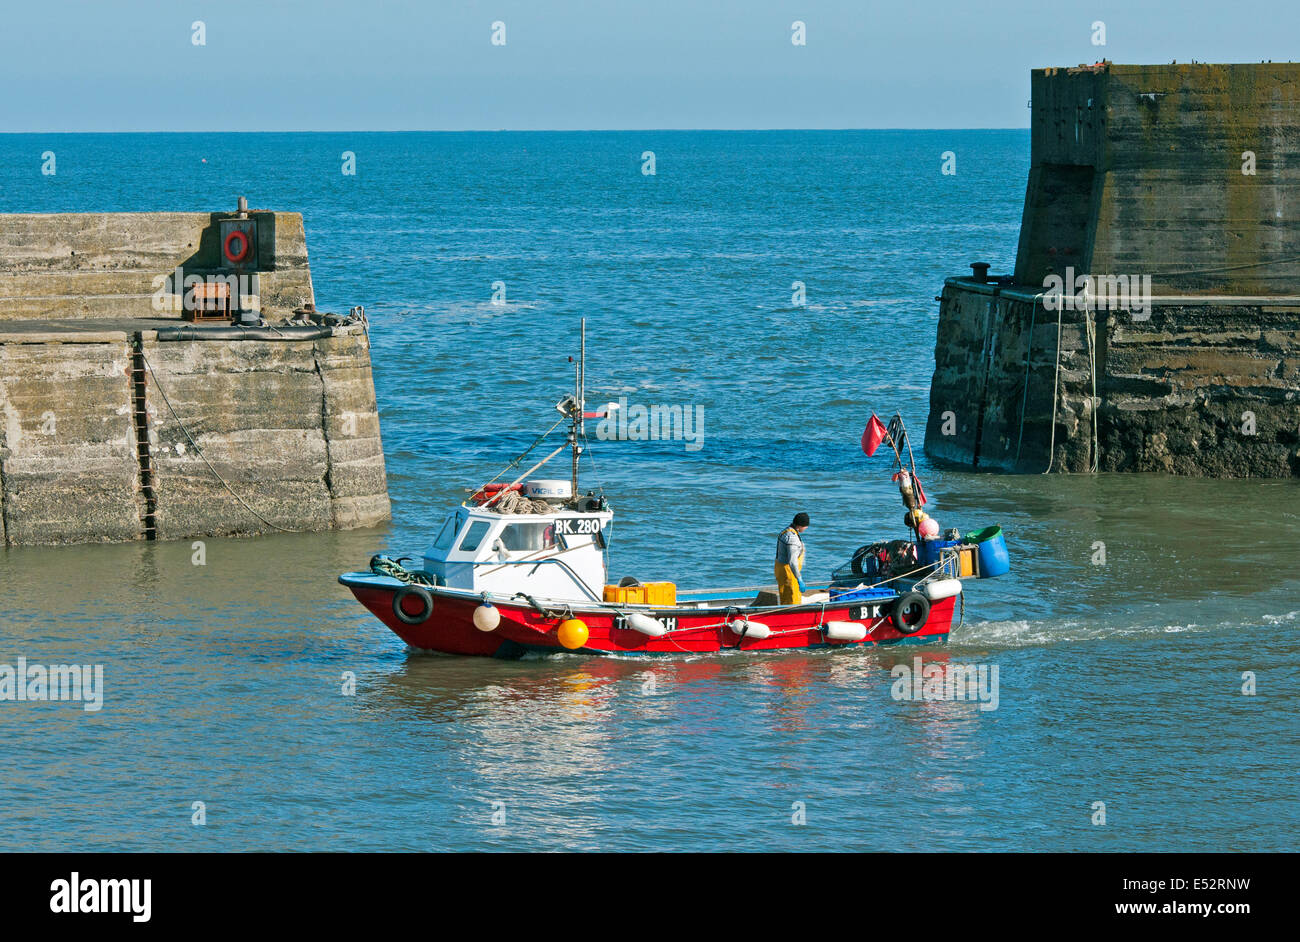 Fishing or Crabbing Boat returning to Craster Harbour on the Northumberland Coast after being out fishing - Stock Image